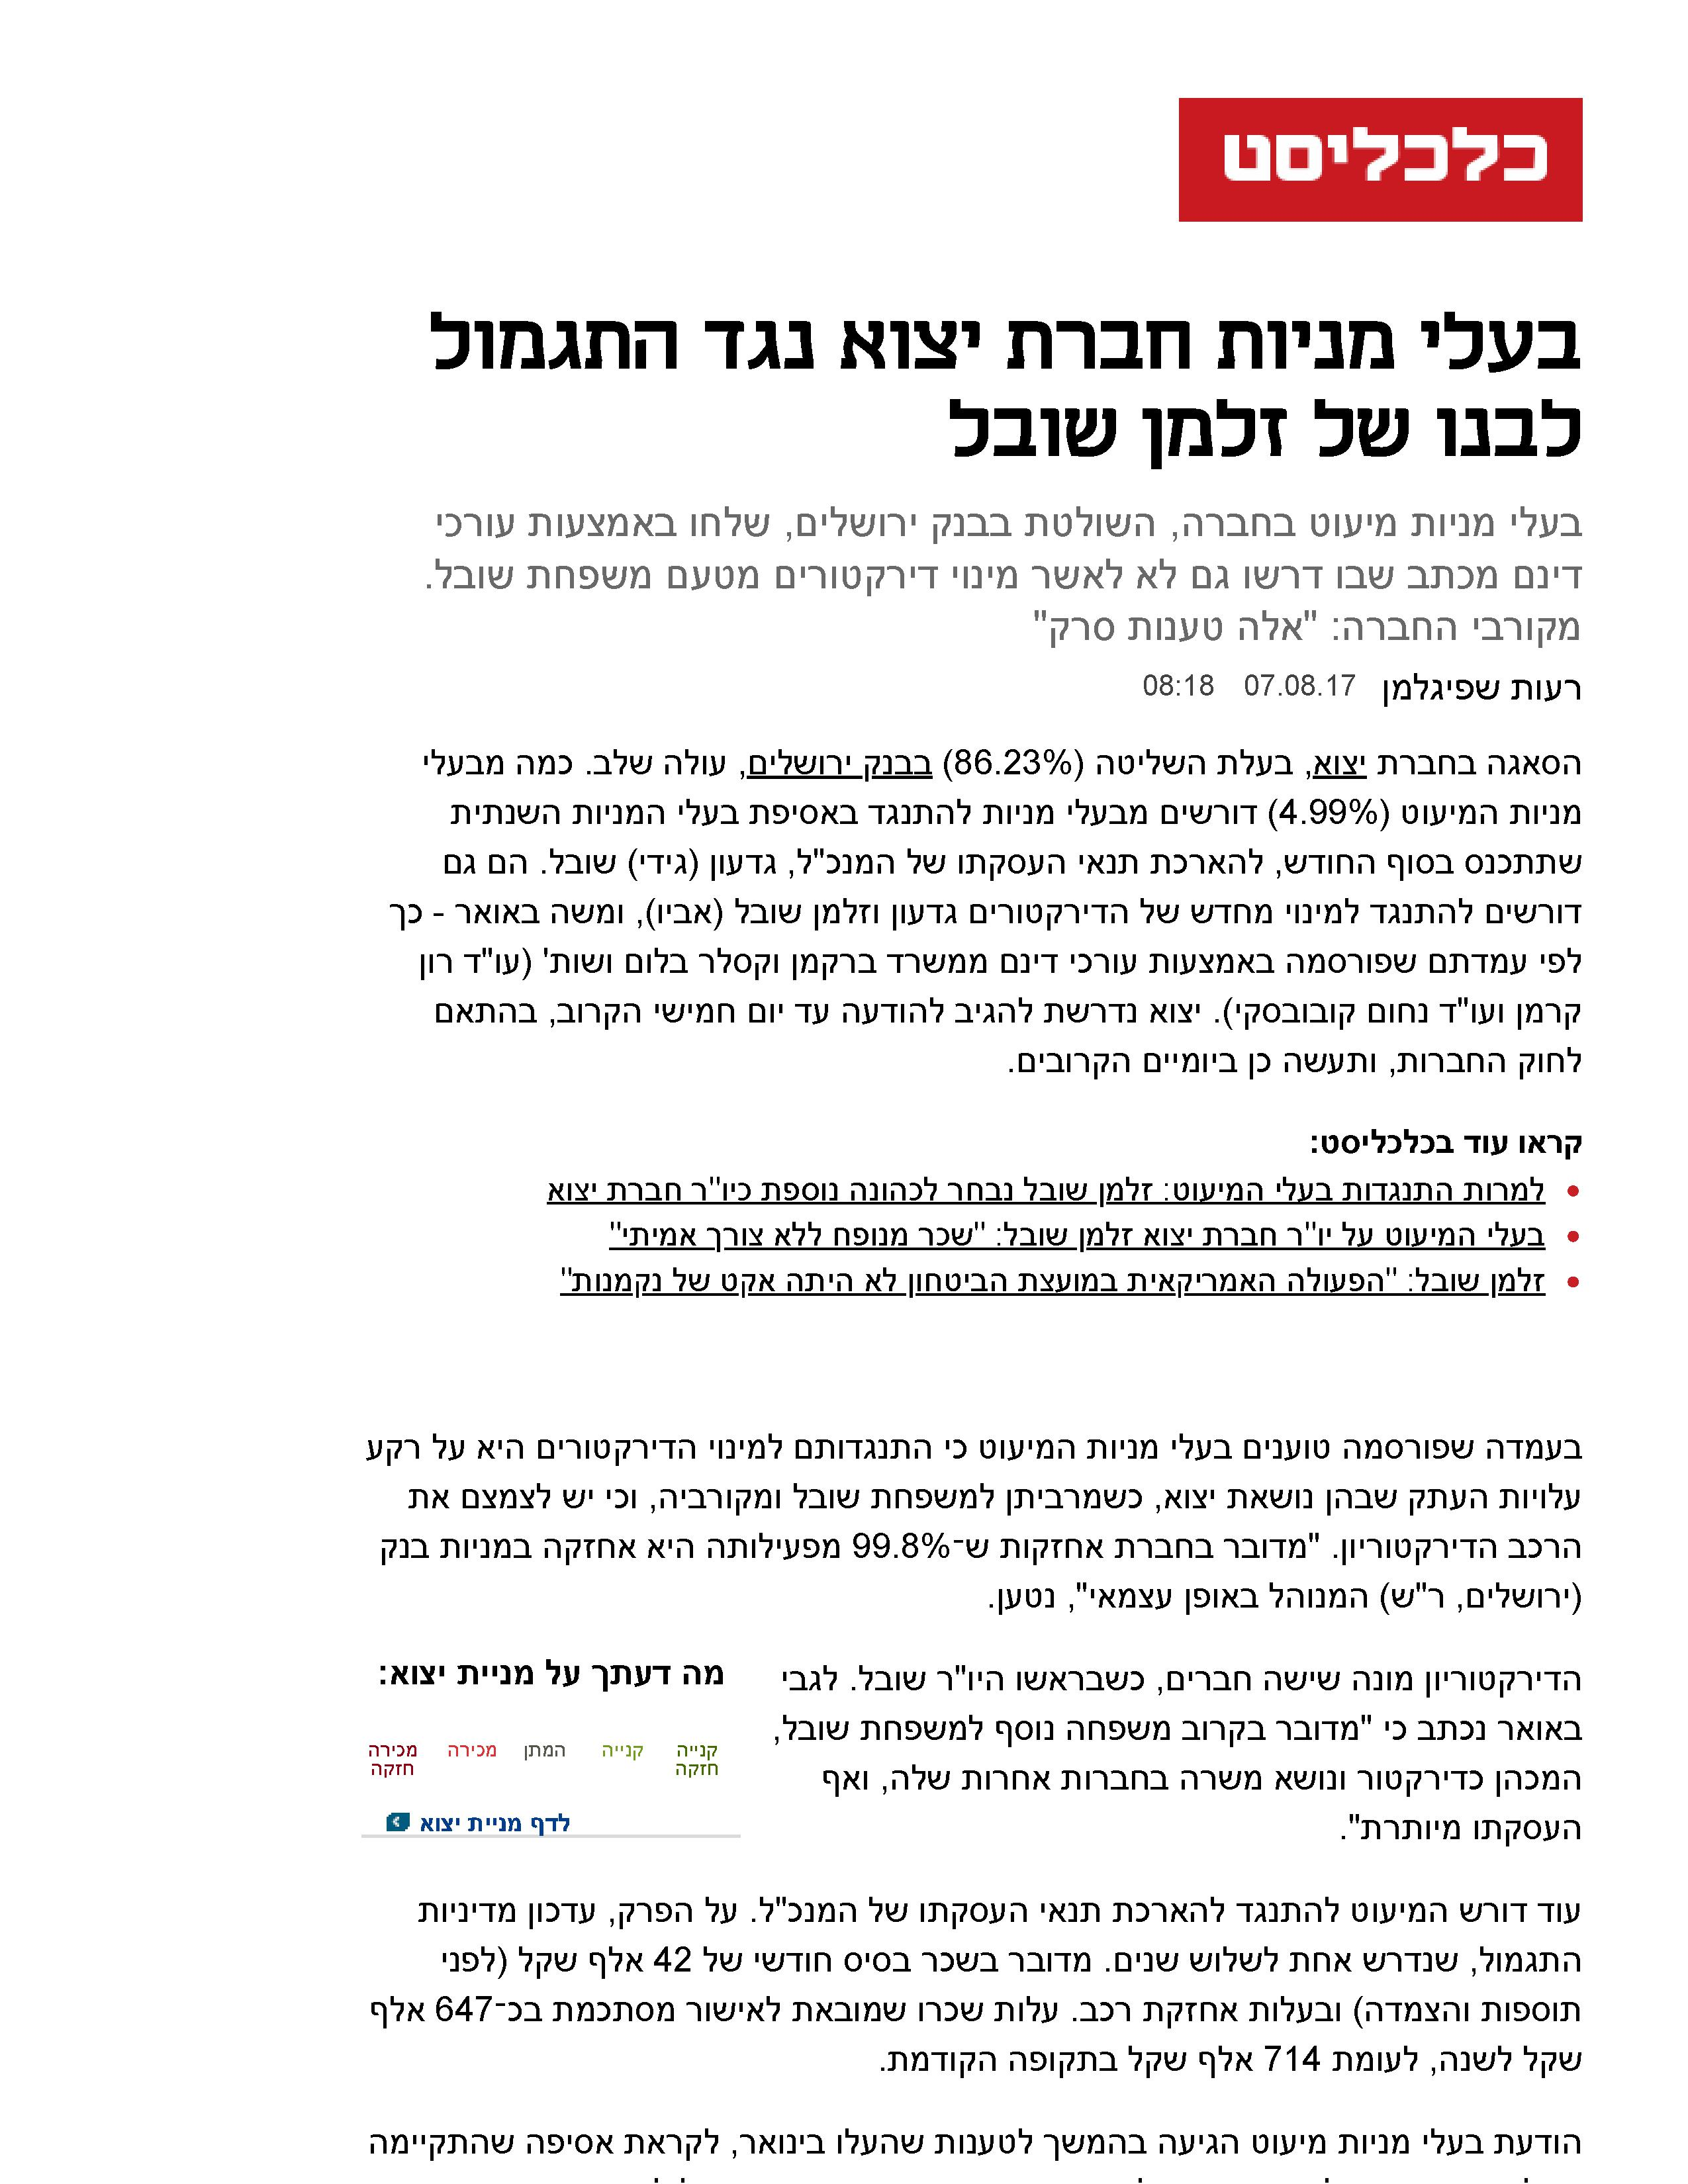 Export company Shareholders against the remuneration of Zalman Shoval's son